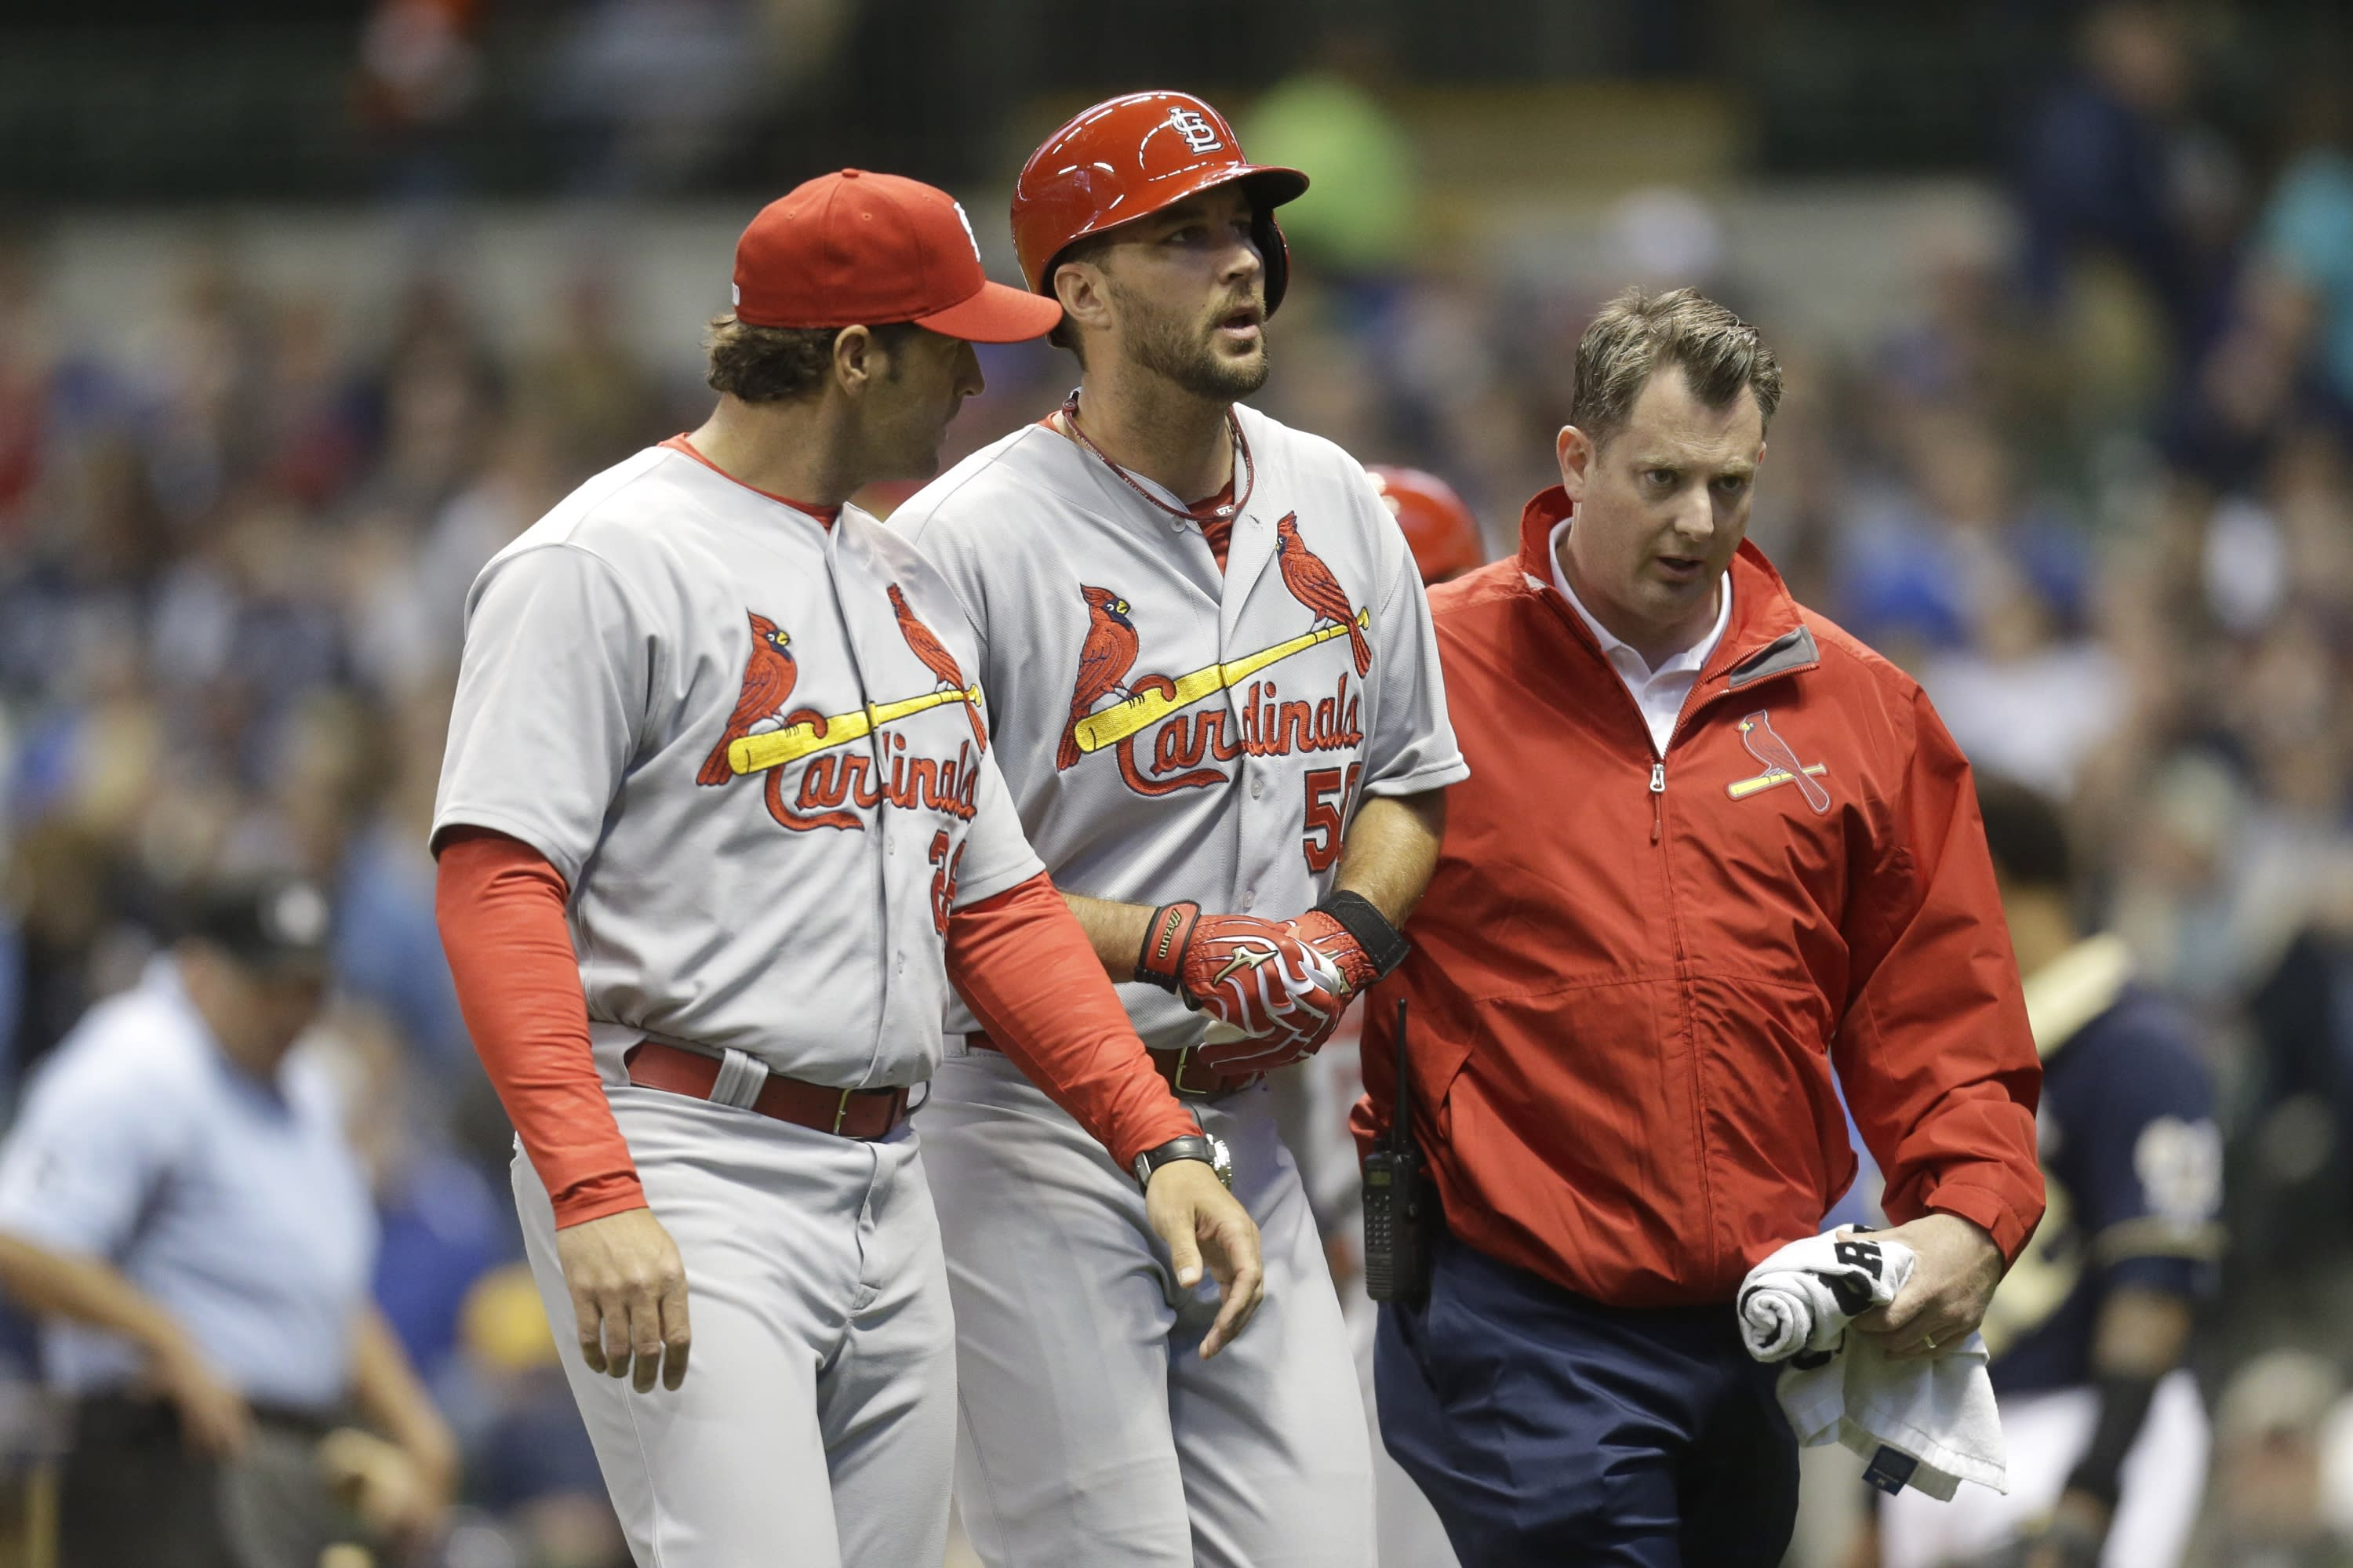 Adam Wainwright leaves game with left ankle injury suffered while batting